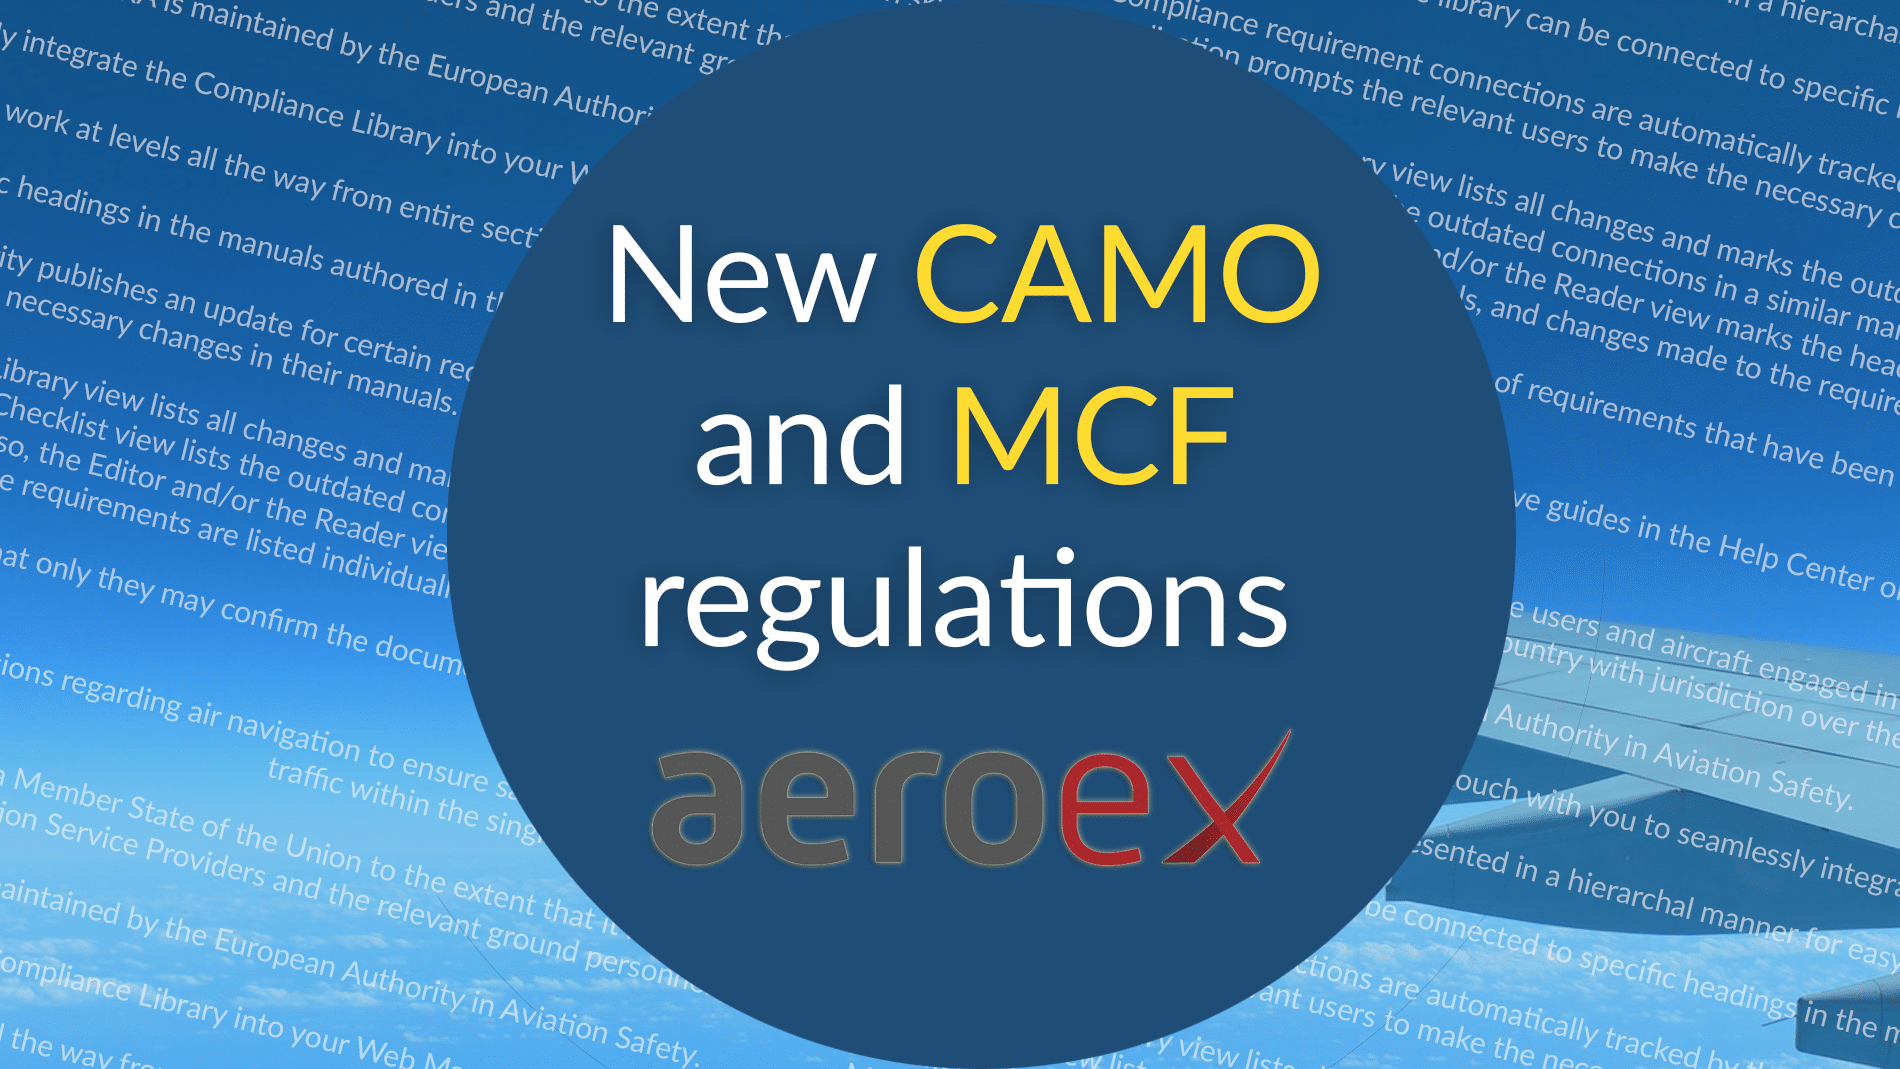 partner aeroex new regulations CAMO MCF